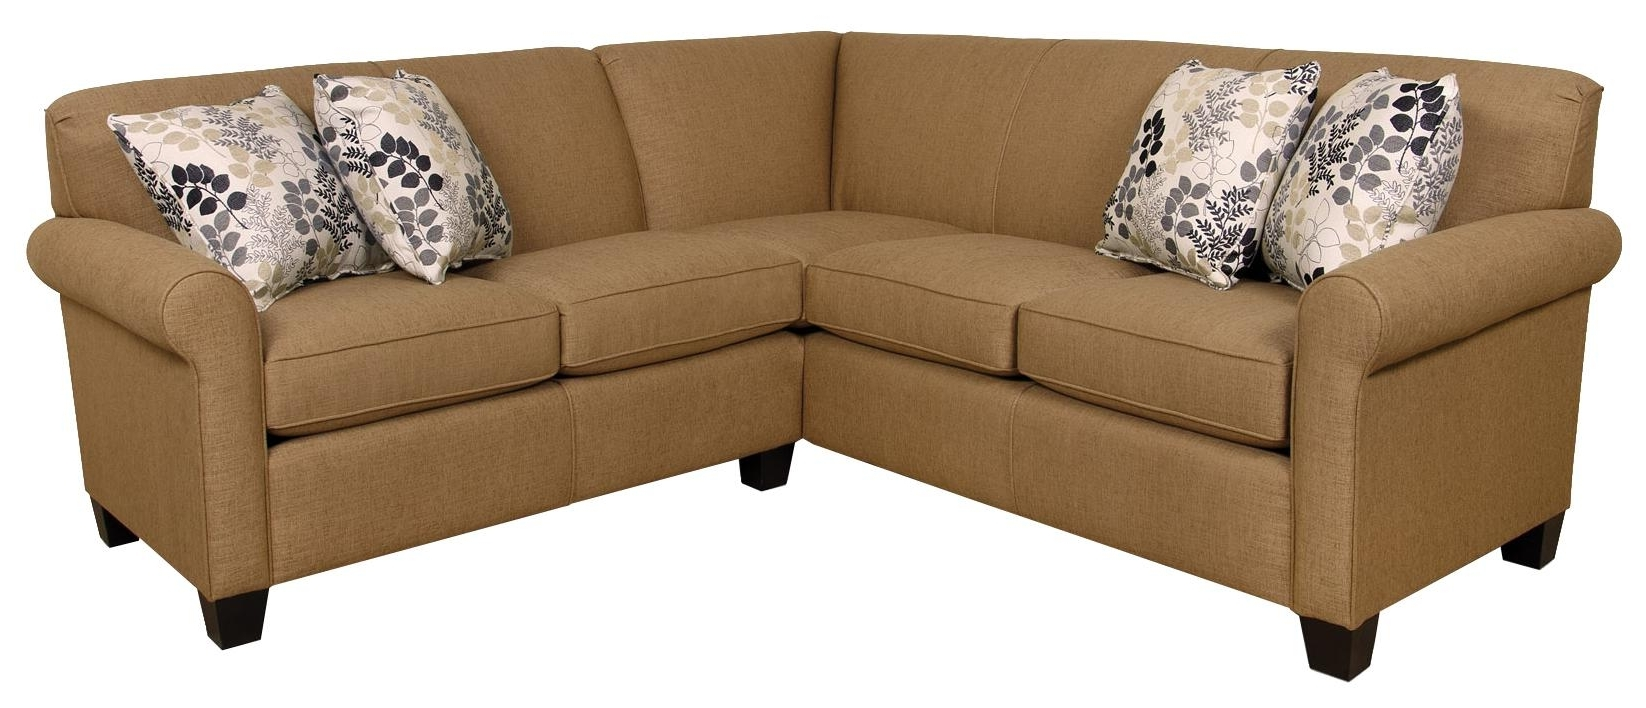 England Sectional Sofas In Favorite England Angie Small Corner Sectional Sofa – Ahfa – Sofa Sectional (View 4 of 20)